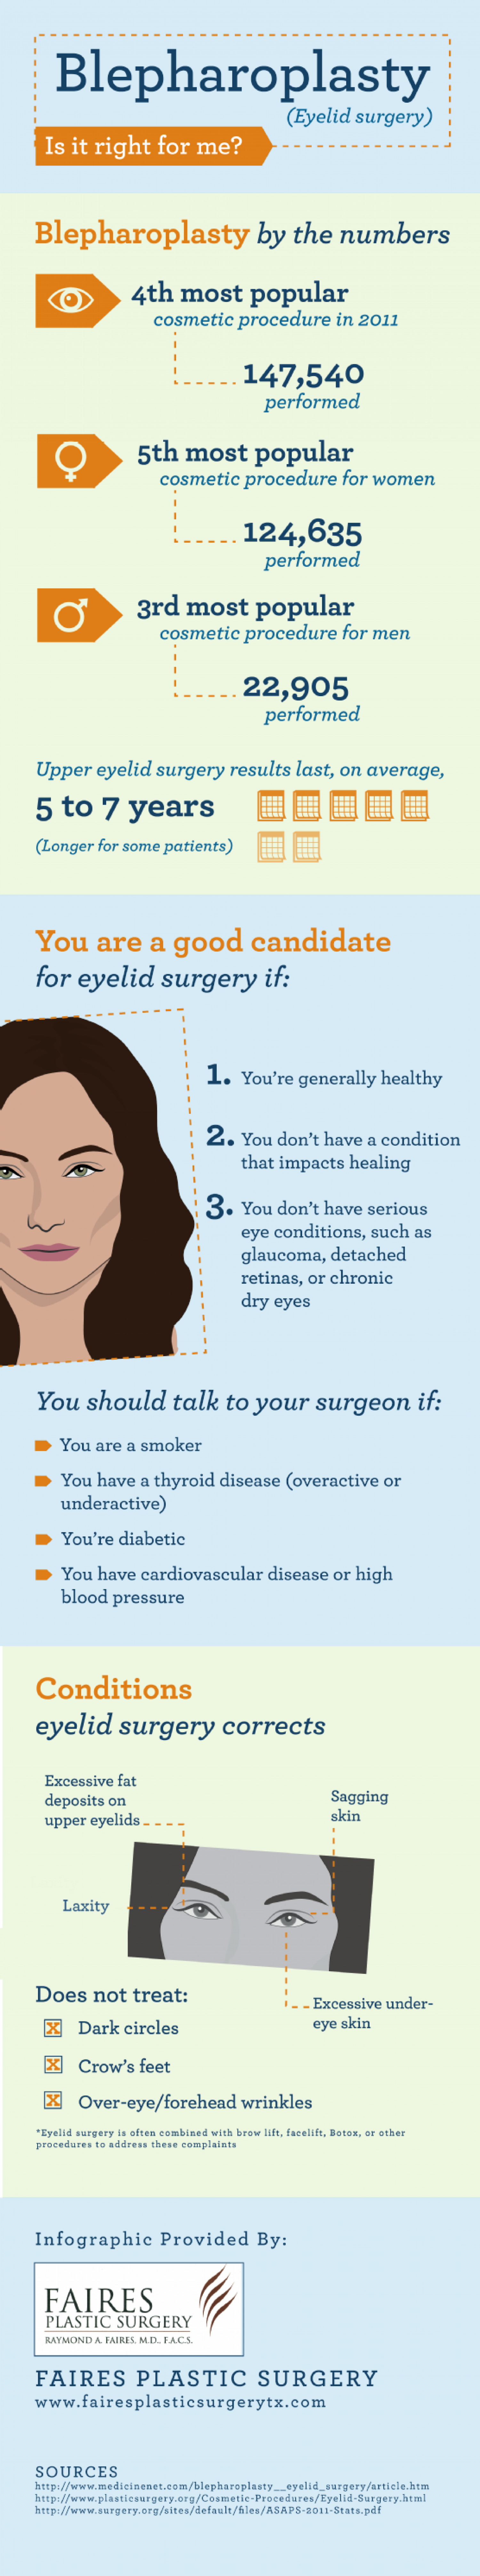 Blepharoplasty (Eyelid Surgery): Is It Right for Me?  Infographic